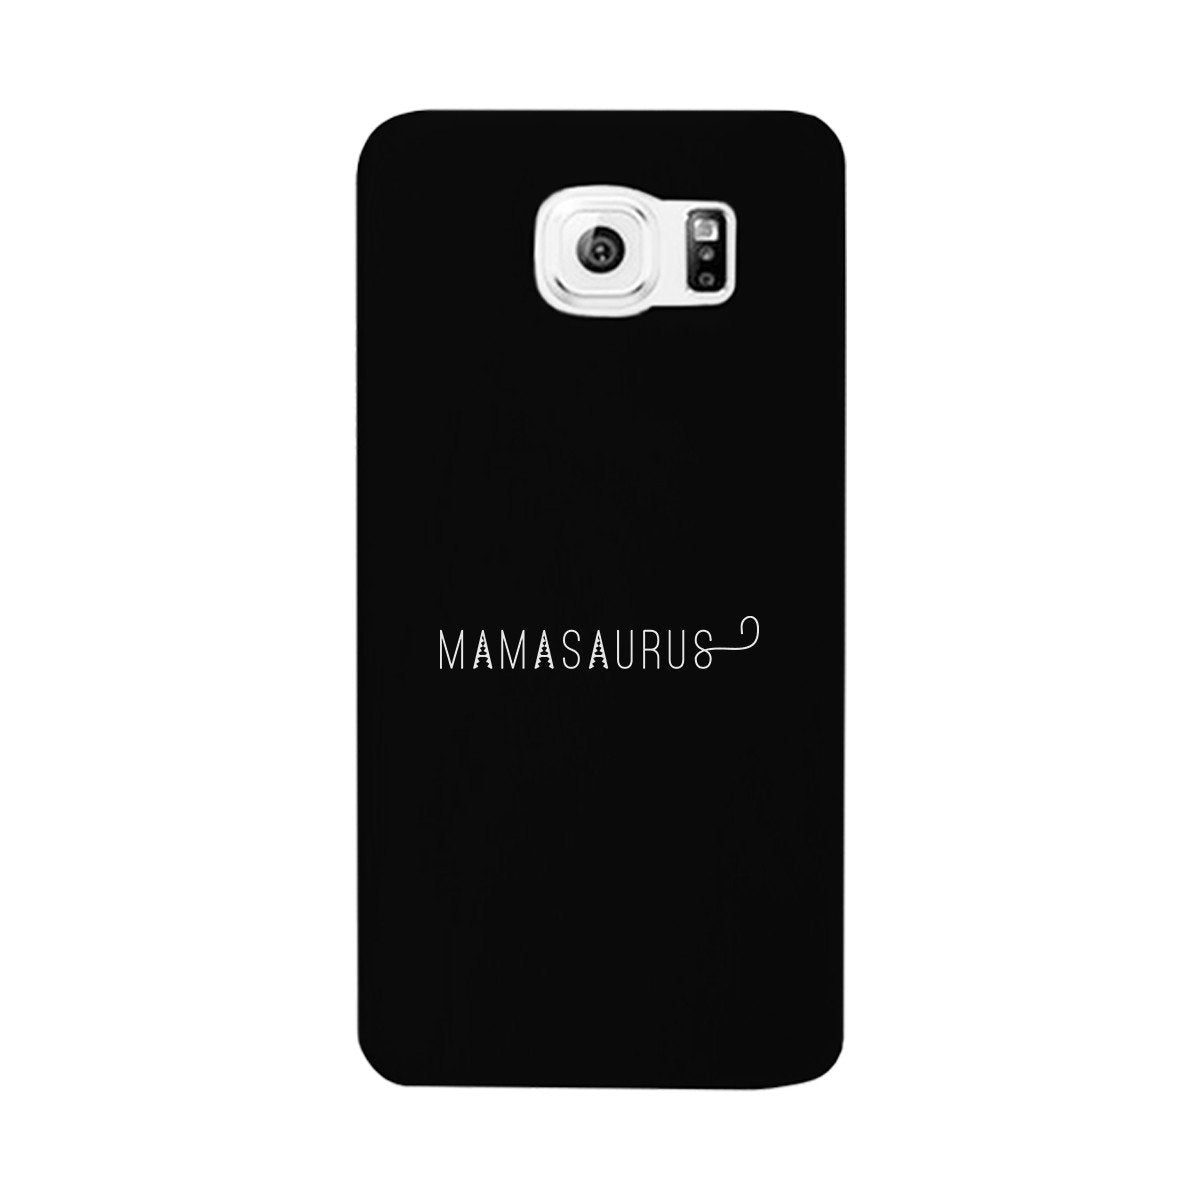 Mamasaurus Black Phone Case Perfect Gift Ideas For Mom of Boys